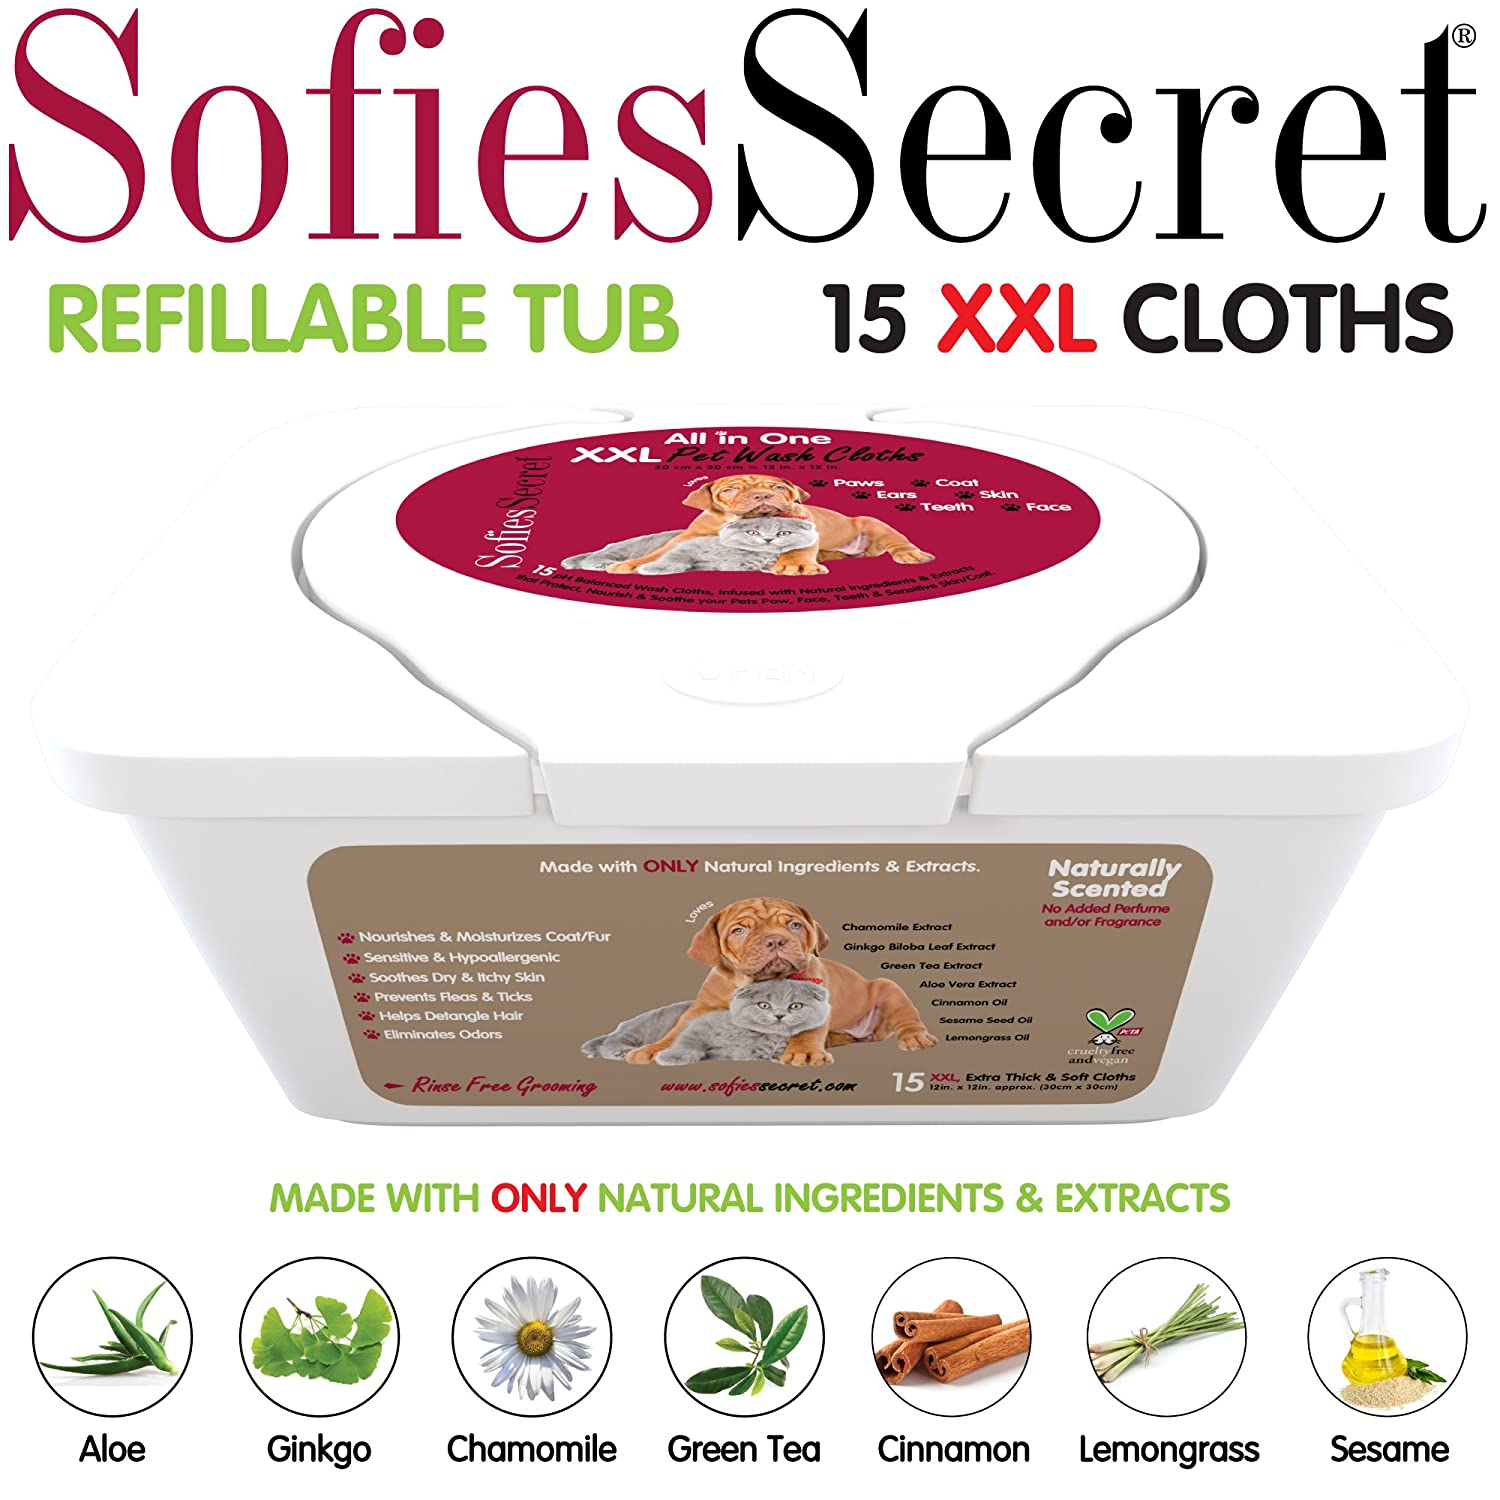 SofiesSecret PET BATH Wipes, 12x12 for Dogs + Cats, infused with ONLY 100% Natural & Organic Extracts, Rinse Free Grooming Wipes for Paws, Coat, Face, Ears, Skin, Teeth Moist Towel Services